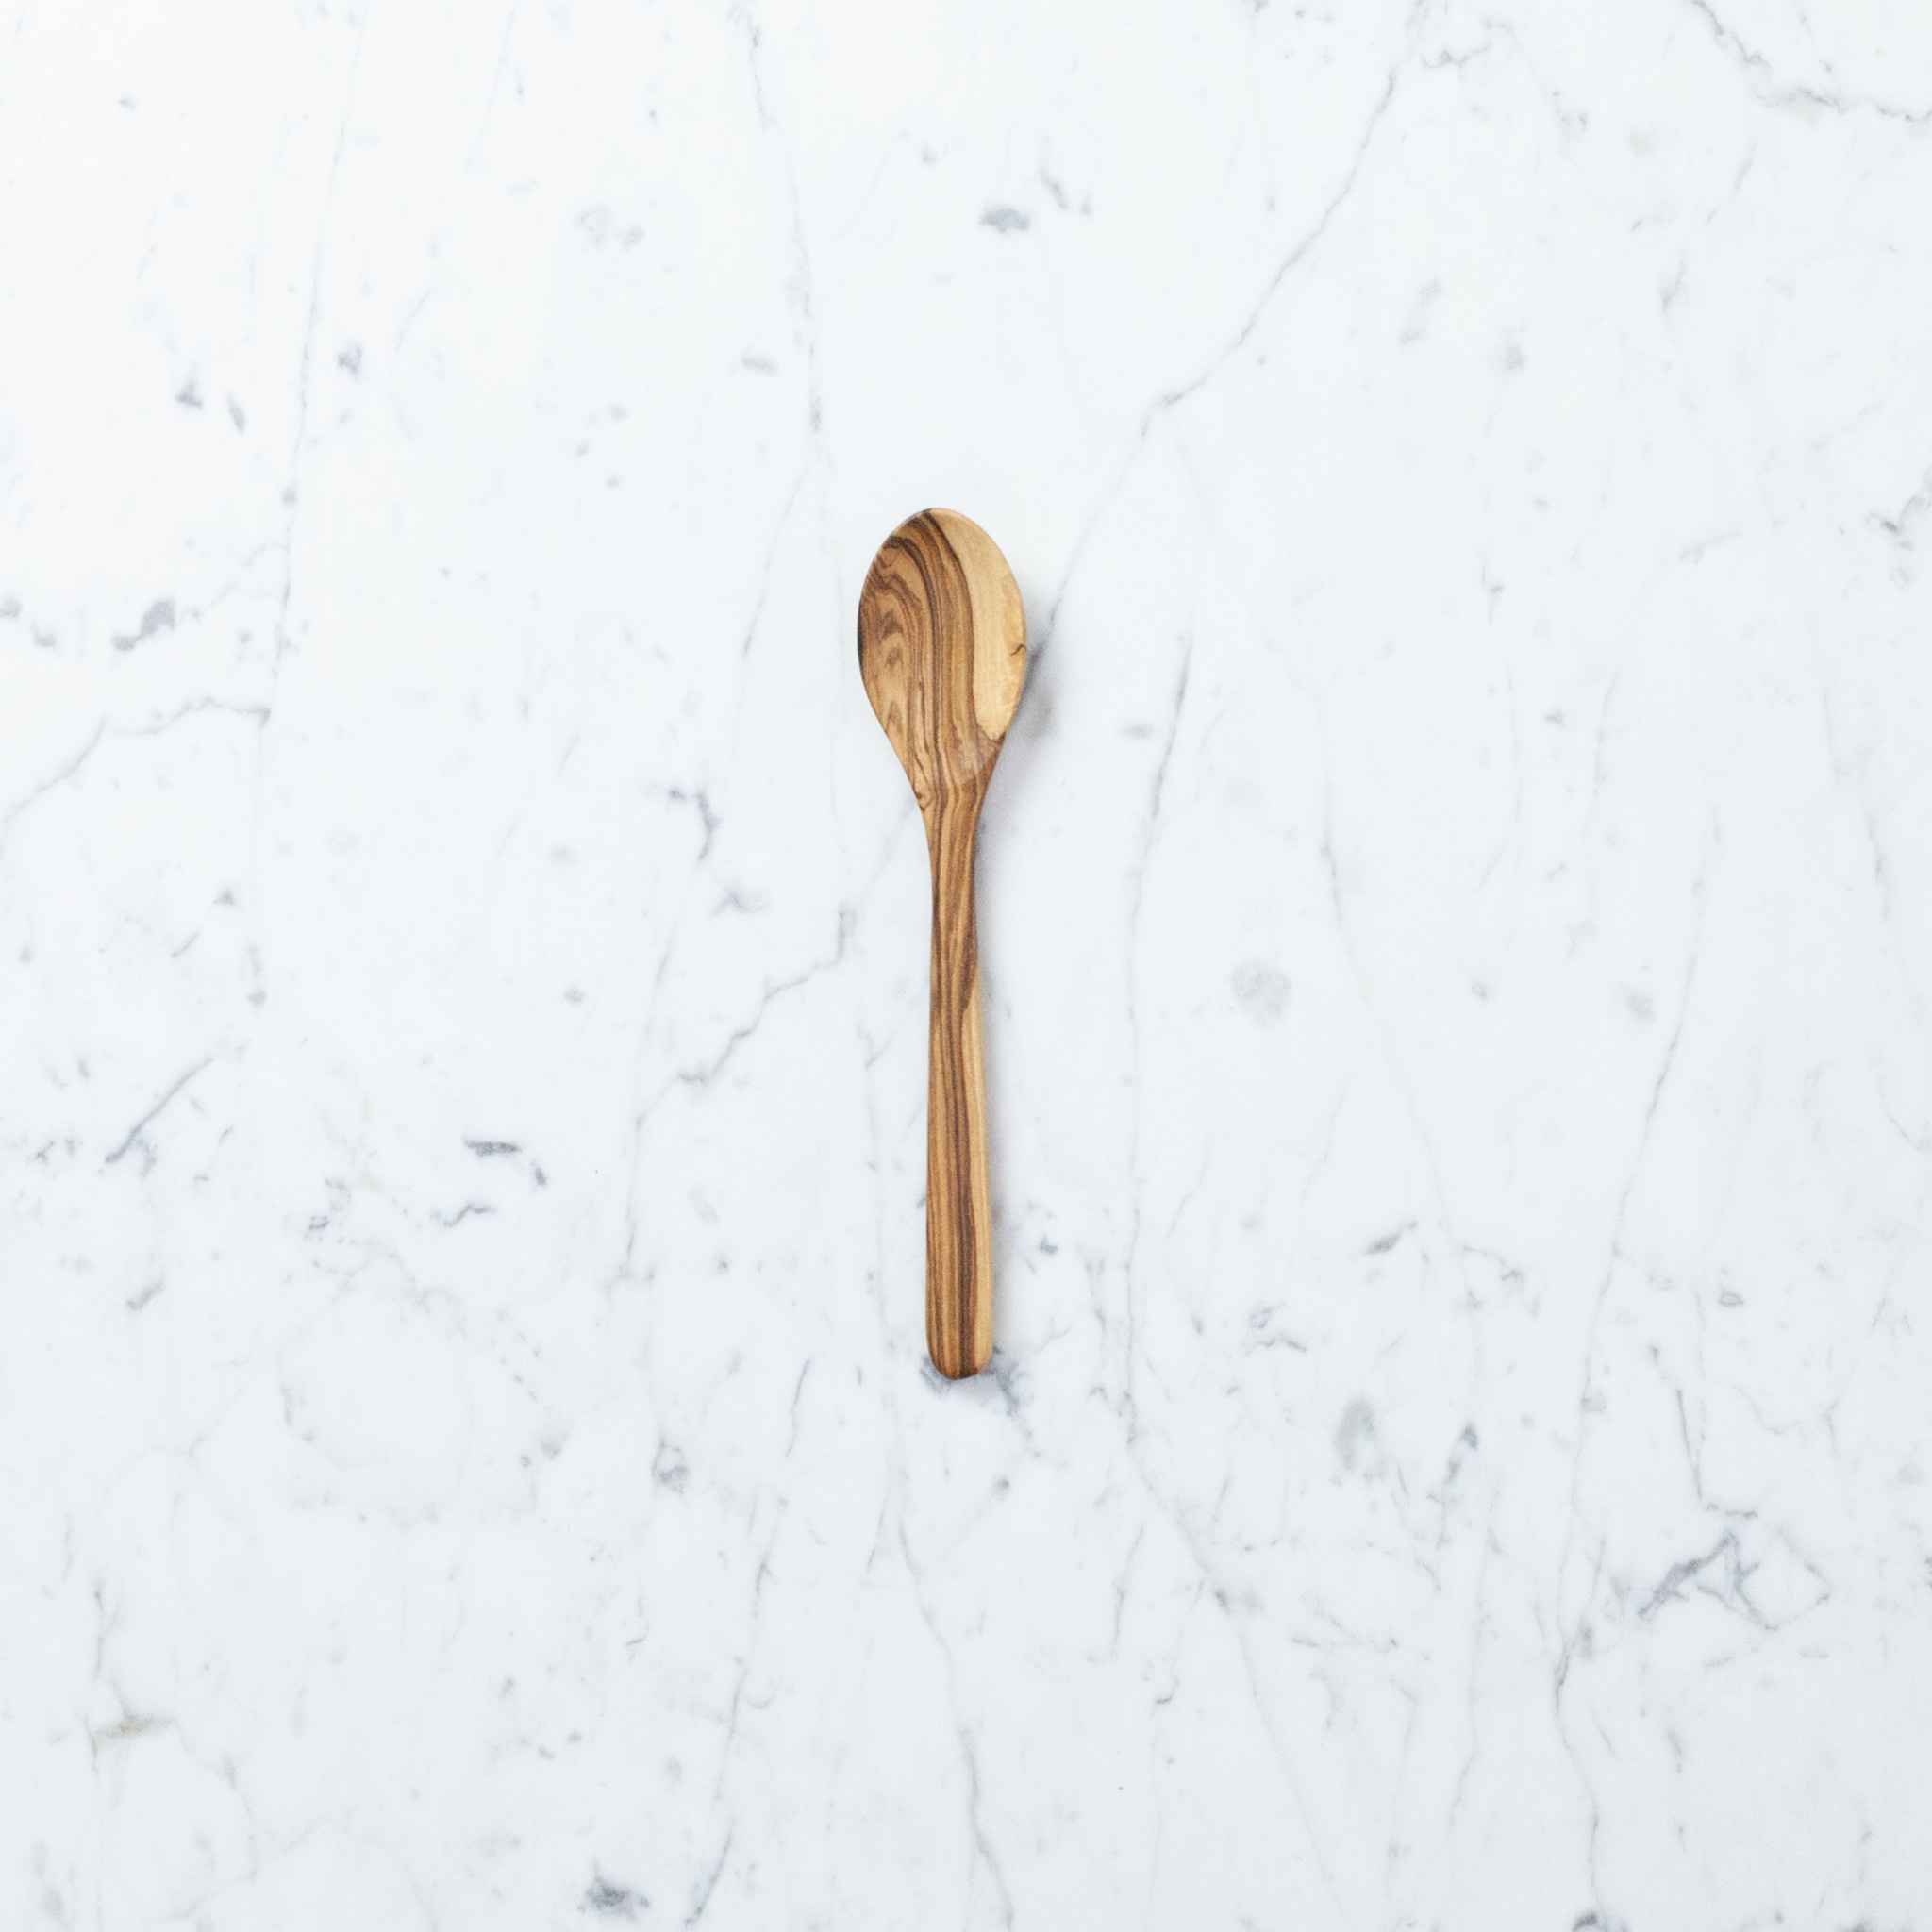 Olive Wood Children's Cooking or Serving Spoon Medium - 8.5""